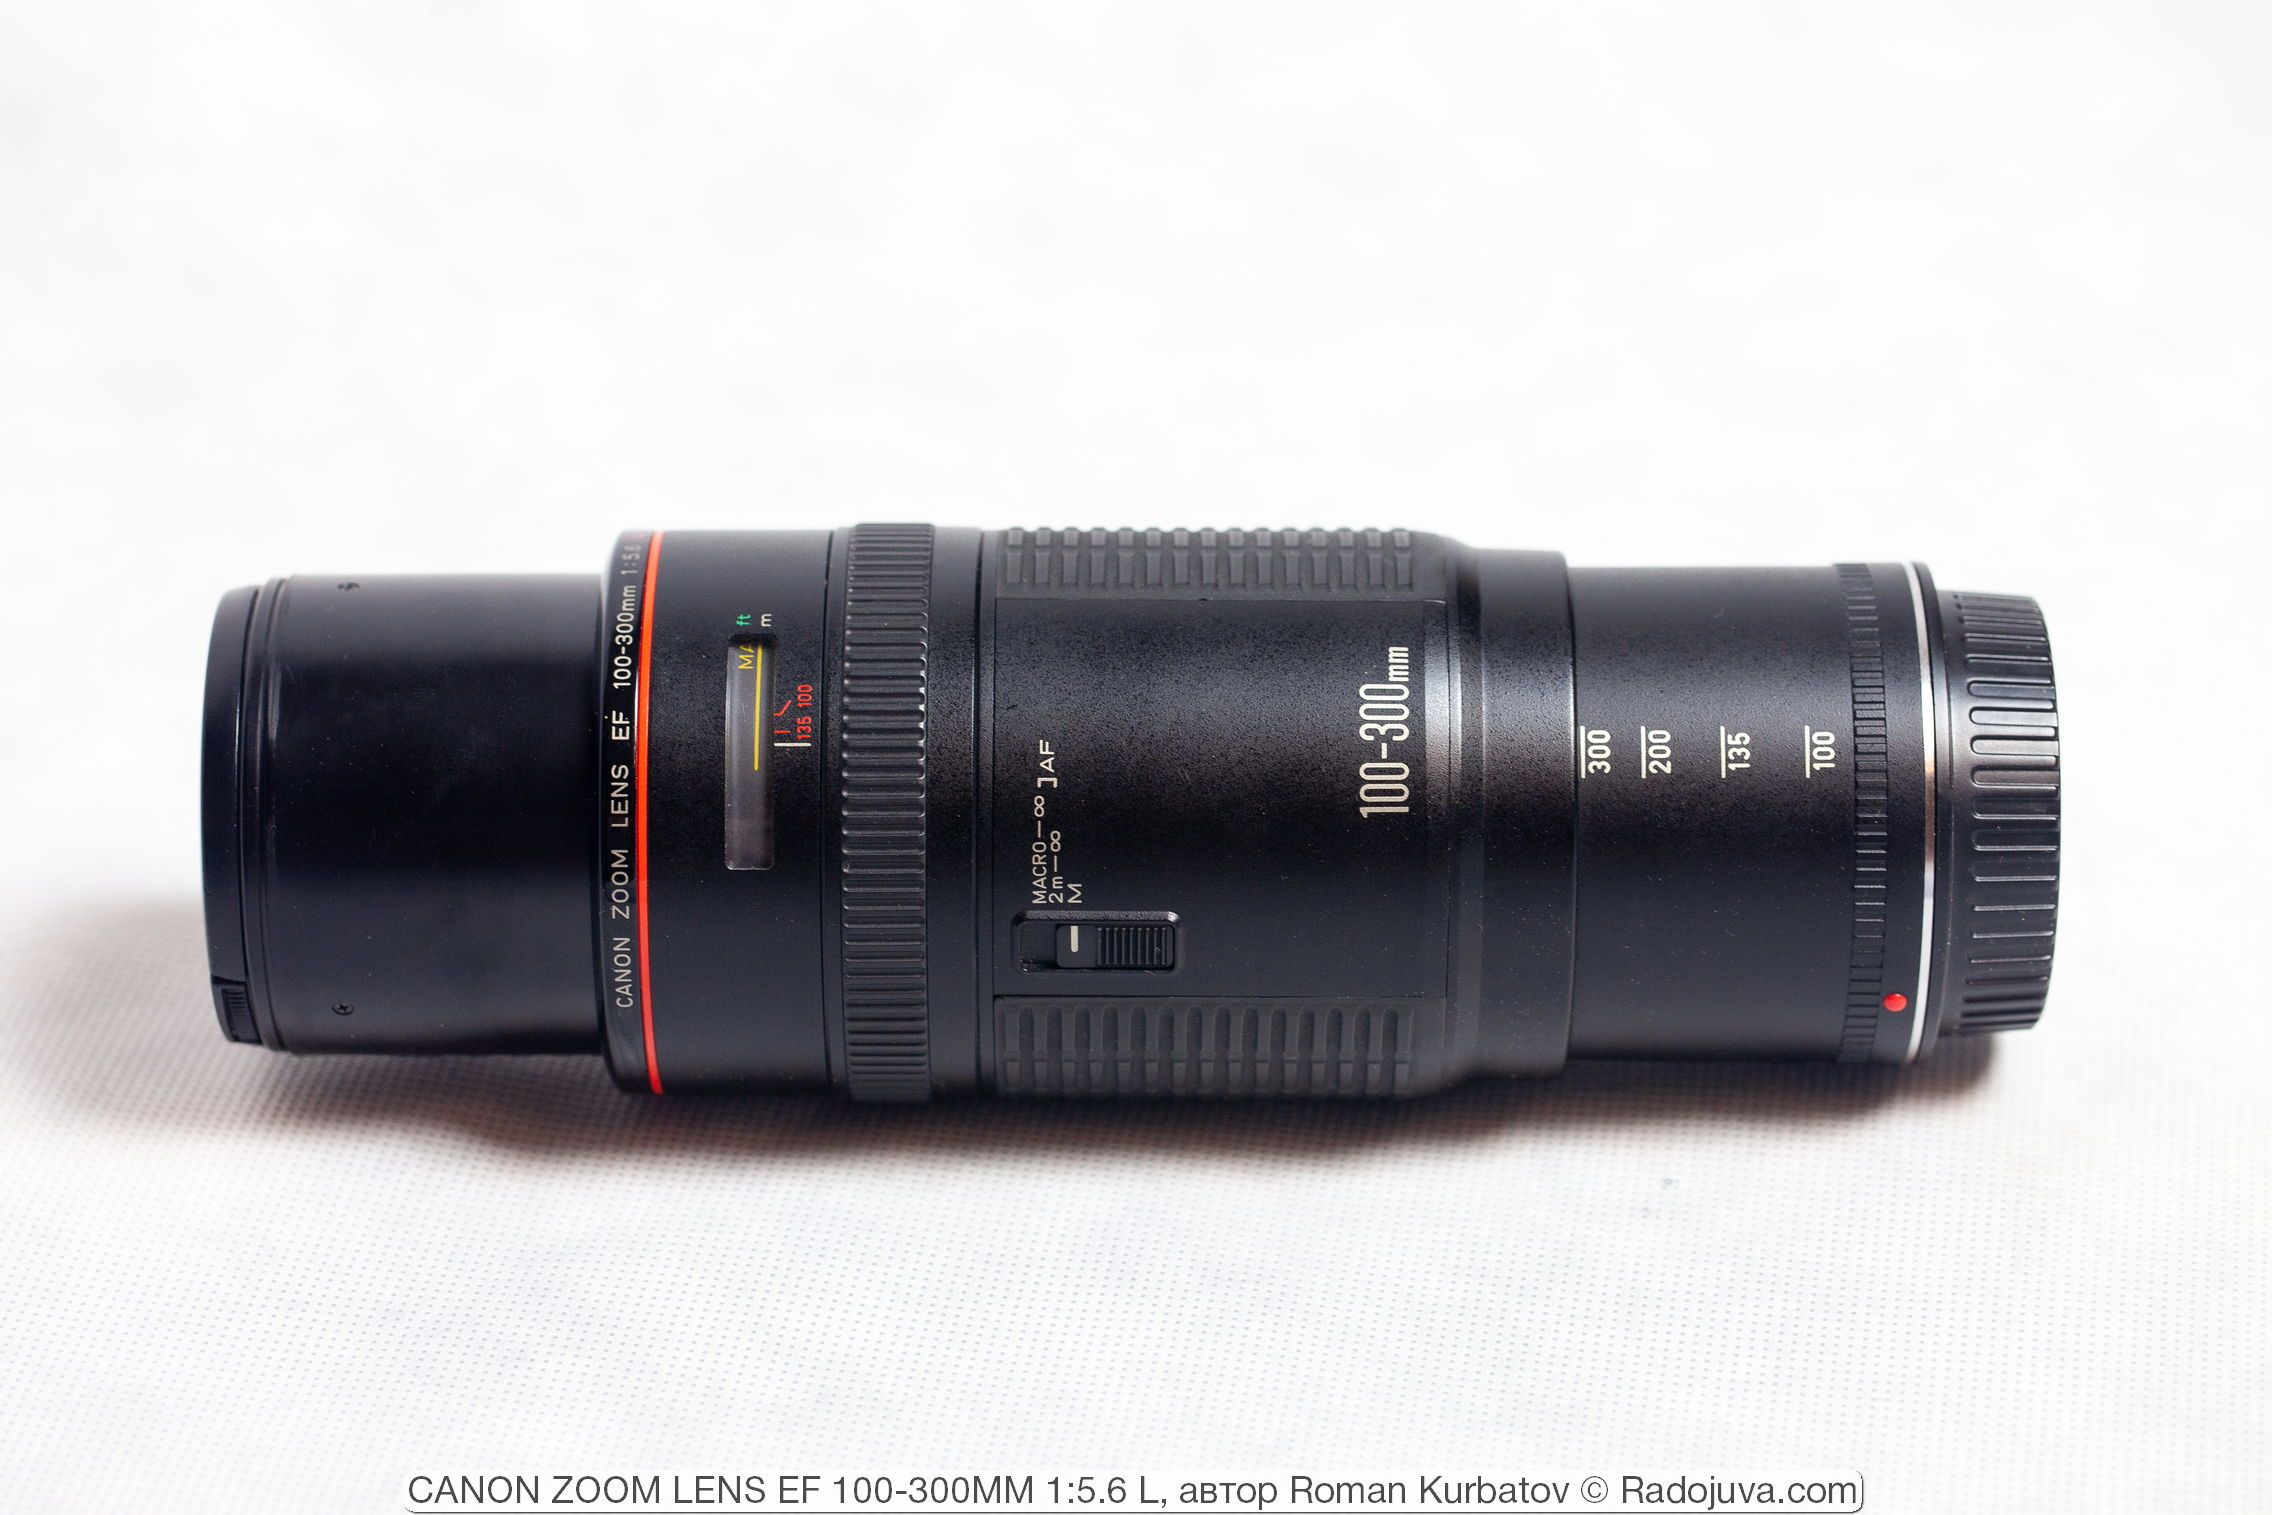 CANON ZOOM LENS EF 100-300MM 1:5.6 L